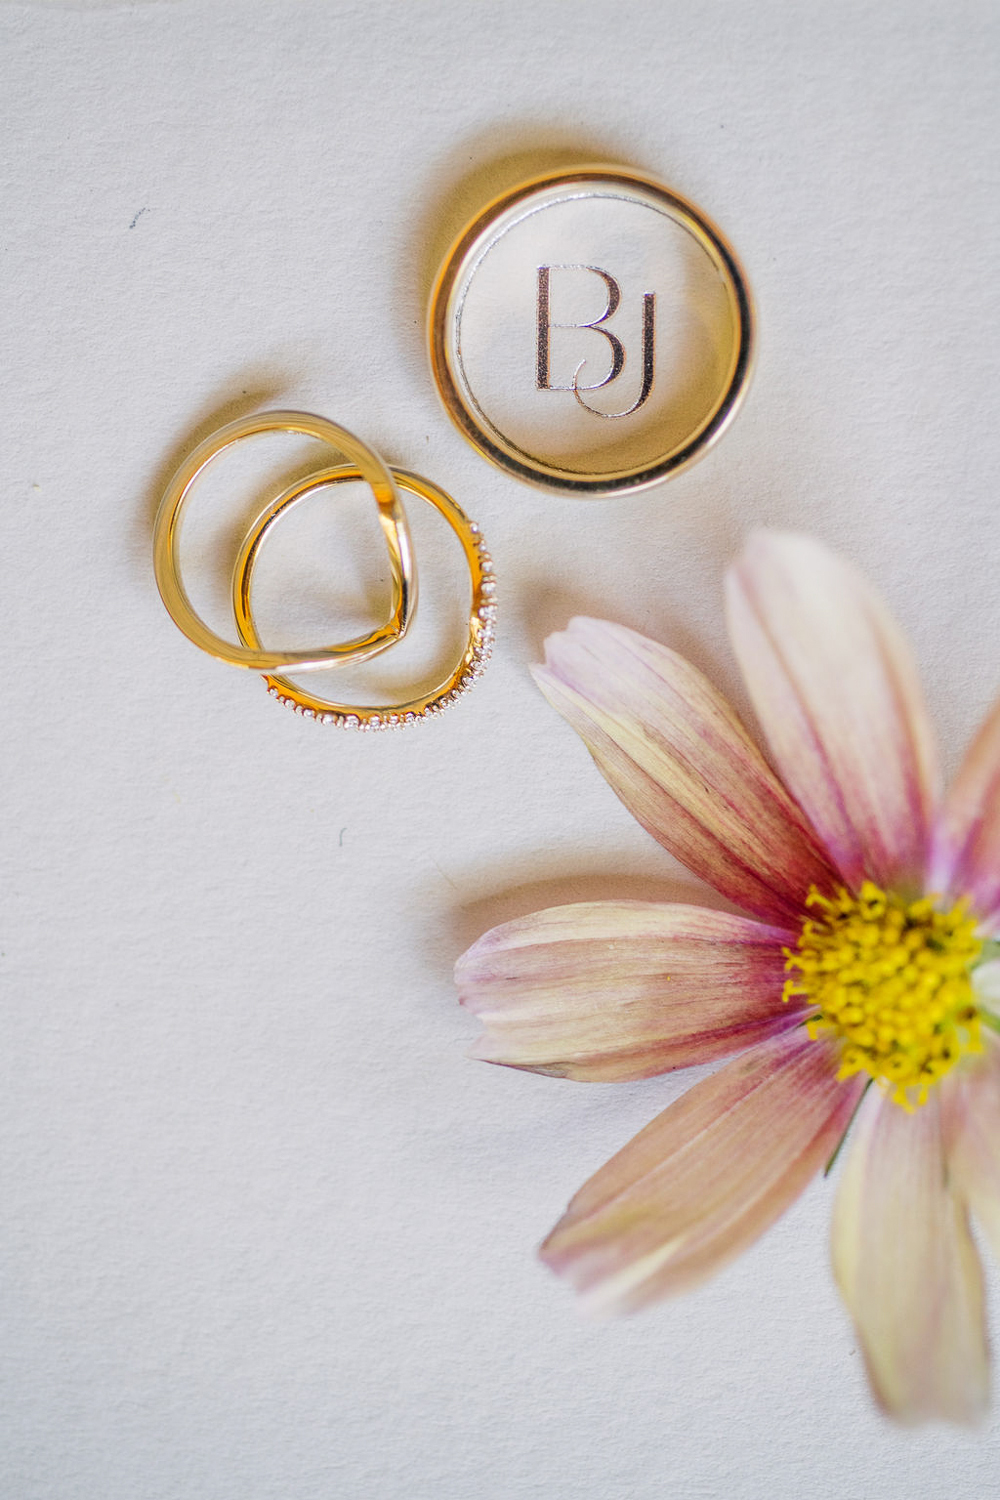 gold wedding rings with pink flowers